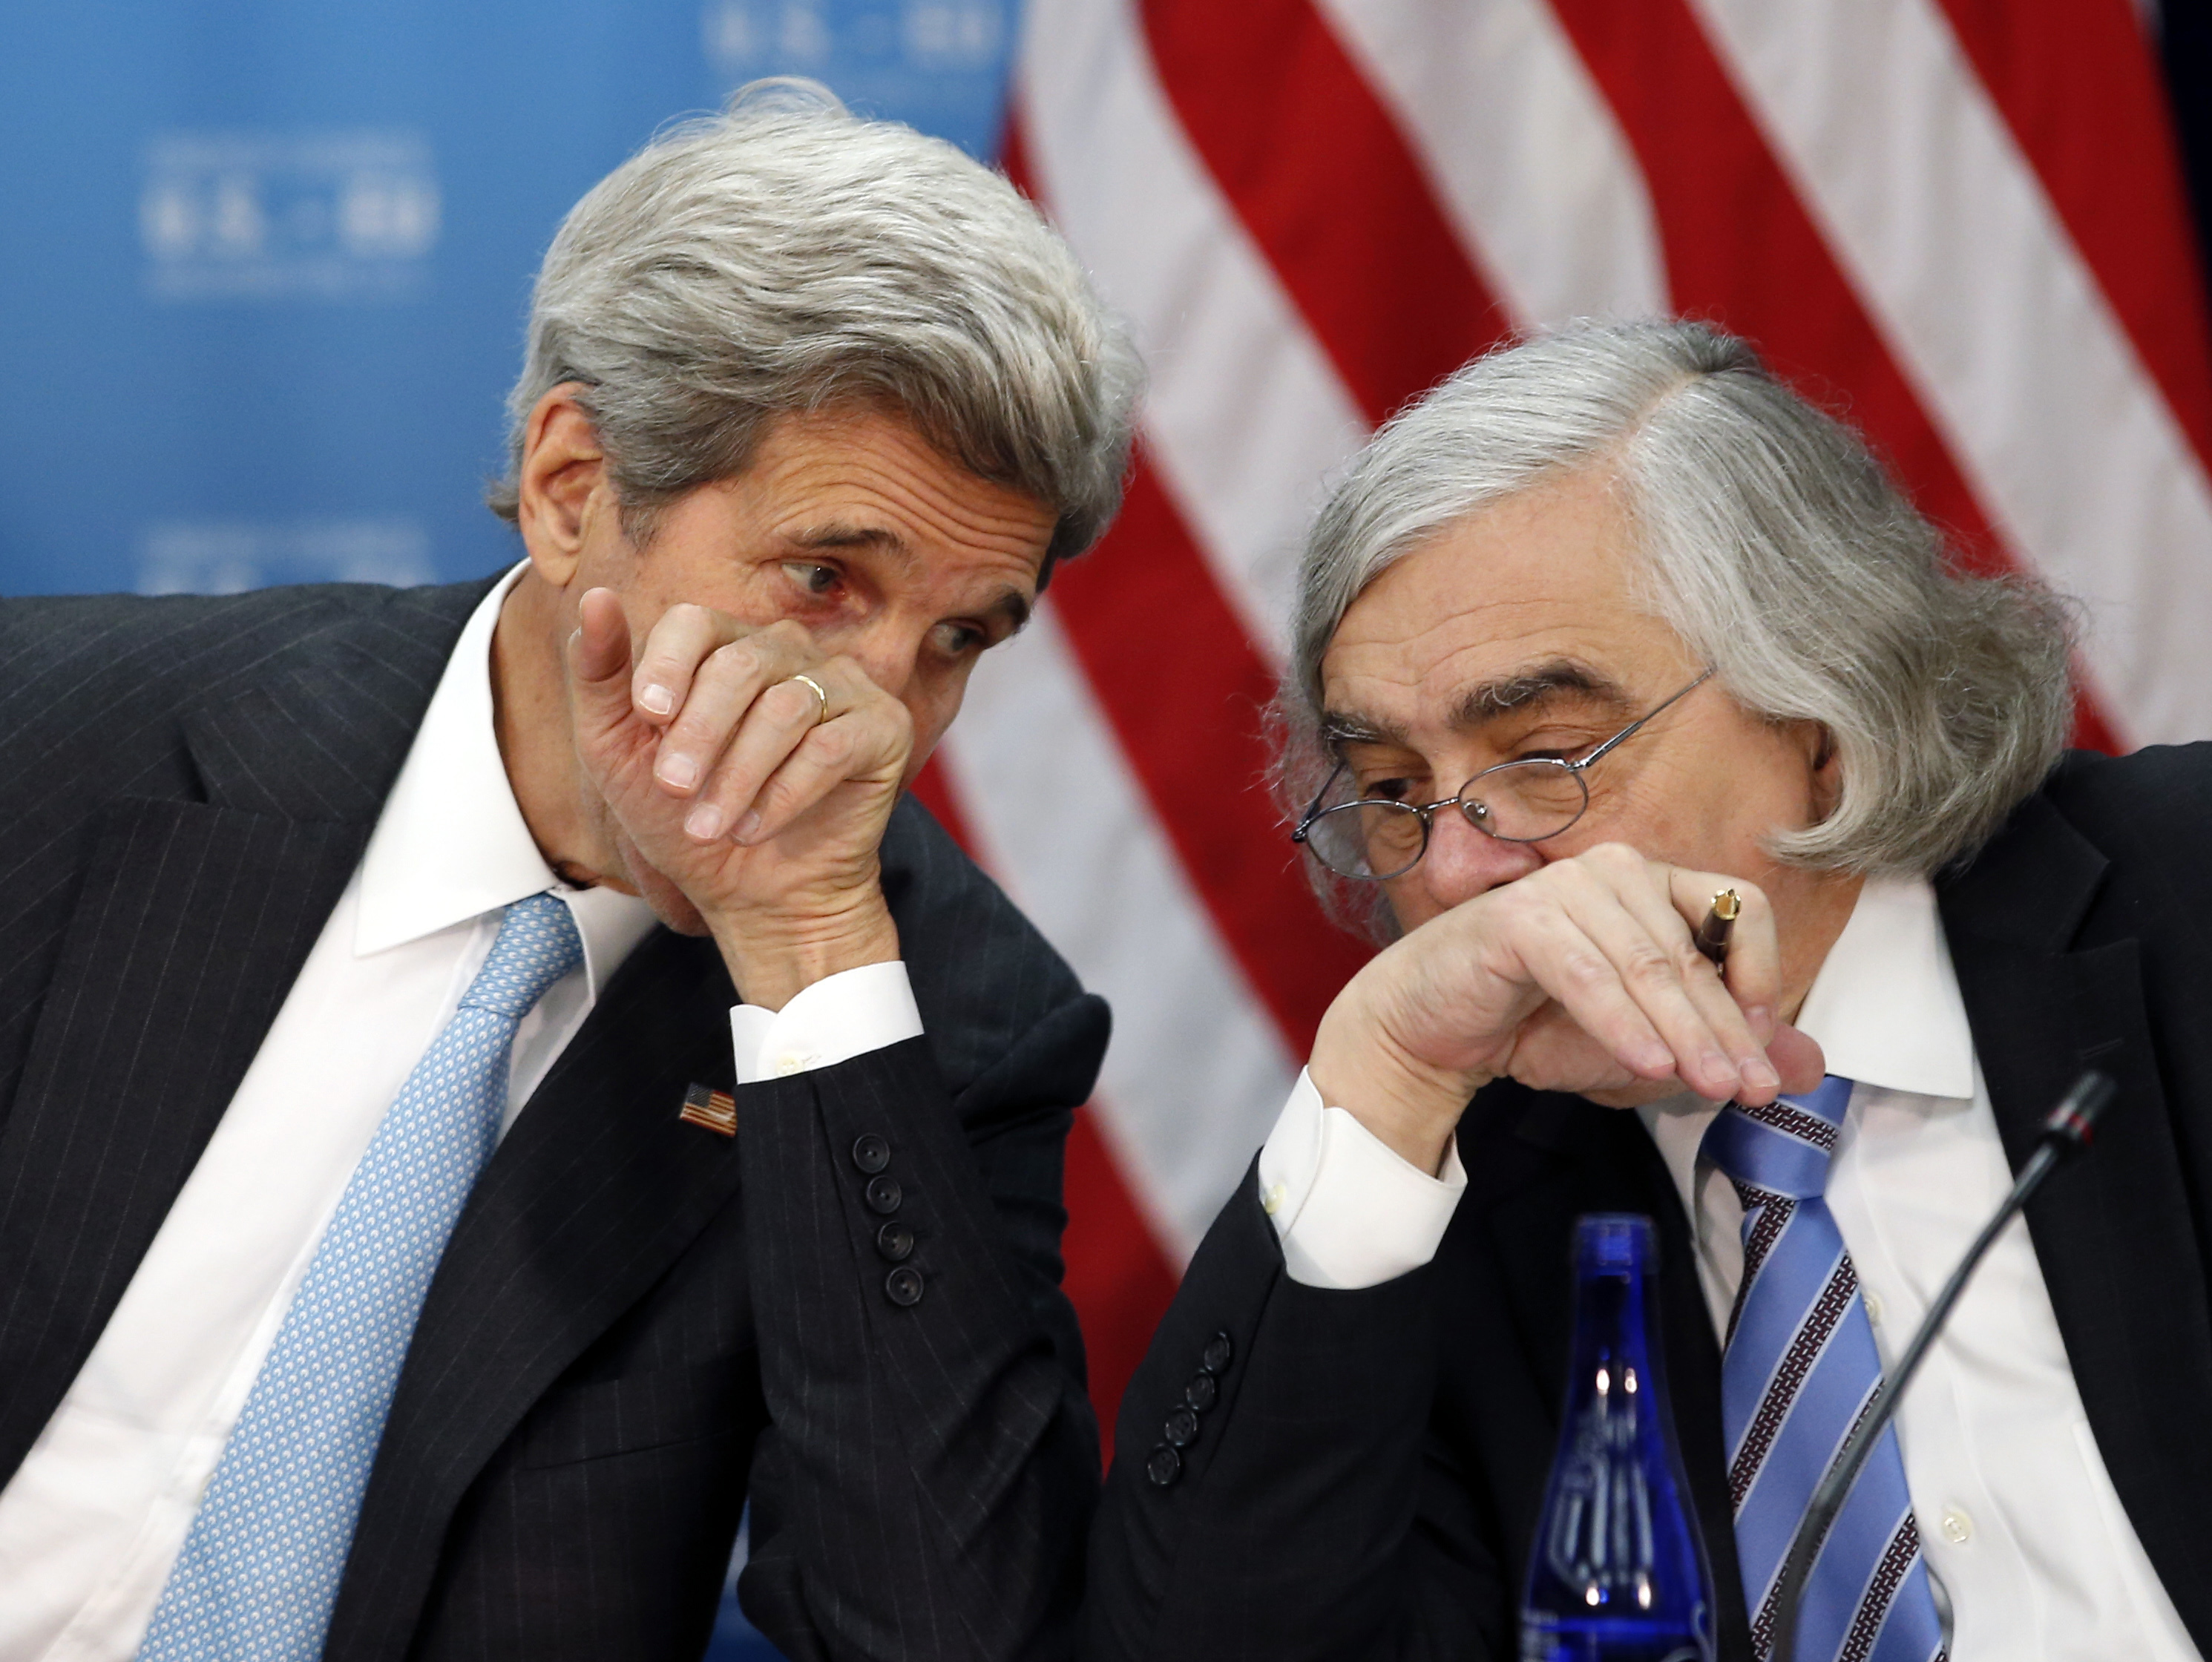 US Iran FILE - In this May 4, 2016 file photo, Secretary of State John Kerry, left, speaks with Secretary of Energy Ernest Moniz at the State Department in Washington. Former Obama administration officials who played central roles in brokering the Iran nuclear agreement are scheduled to brief congressional Democrats on the merits of the international accord as President Donald Trump prepares to announce a decision that could lead to an unraveling of the pact. (AP Photo/Alex Brandon)